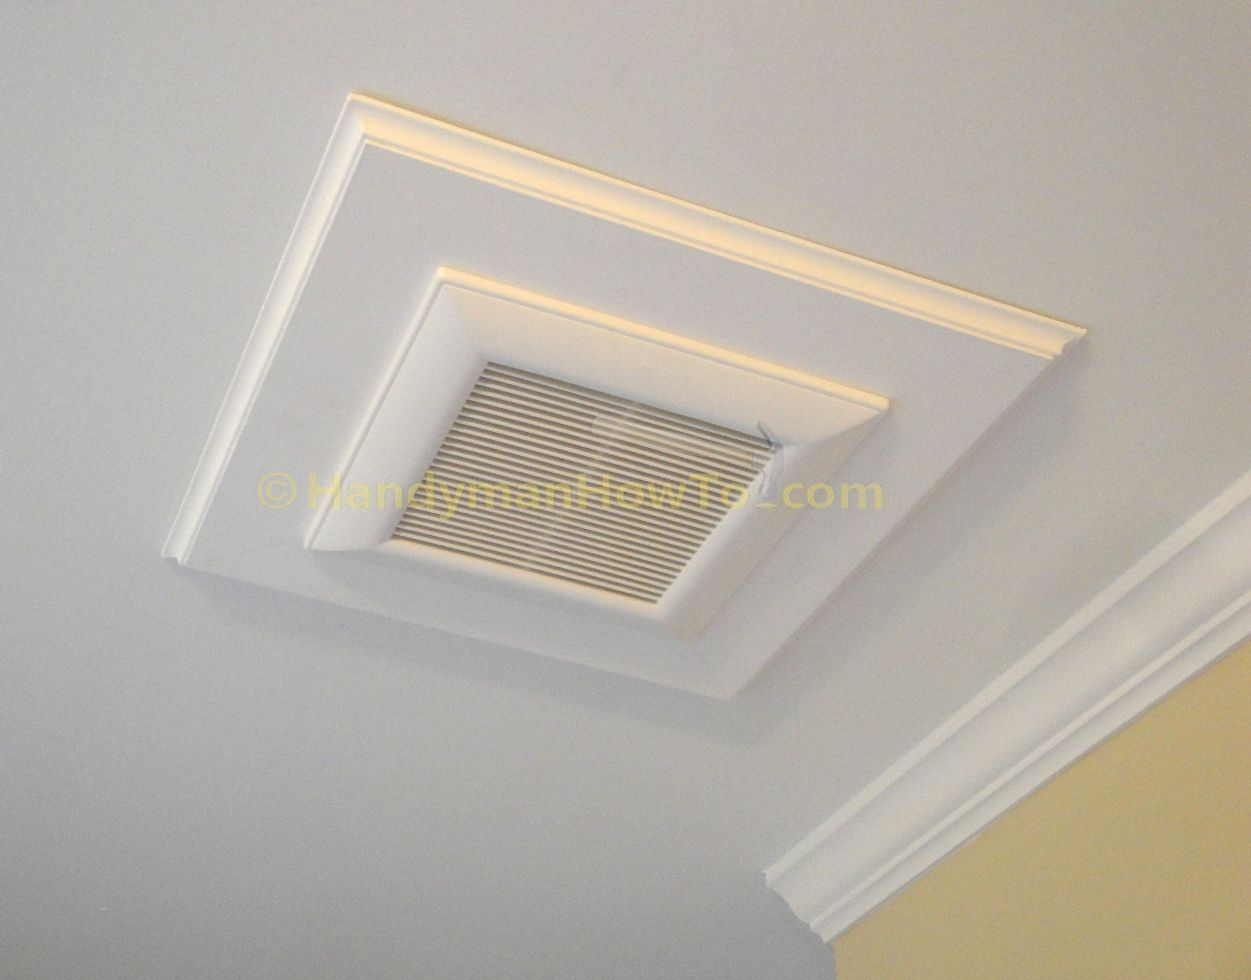 Bathroom Vent Fan Decorative Wood Trim To Conceal A Gap In